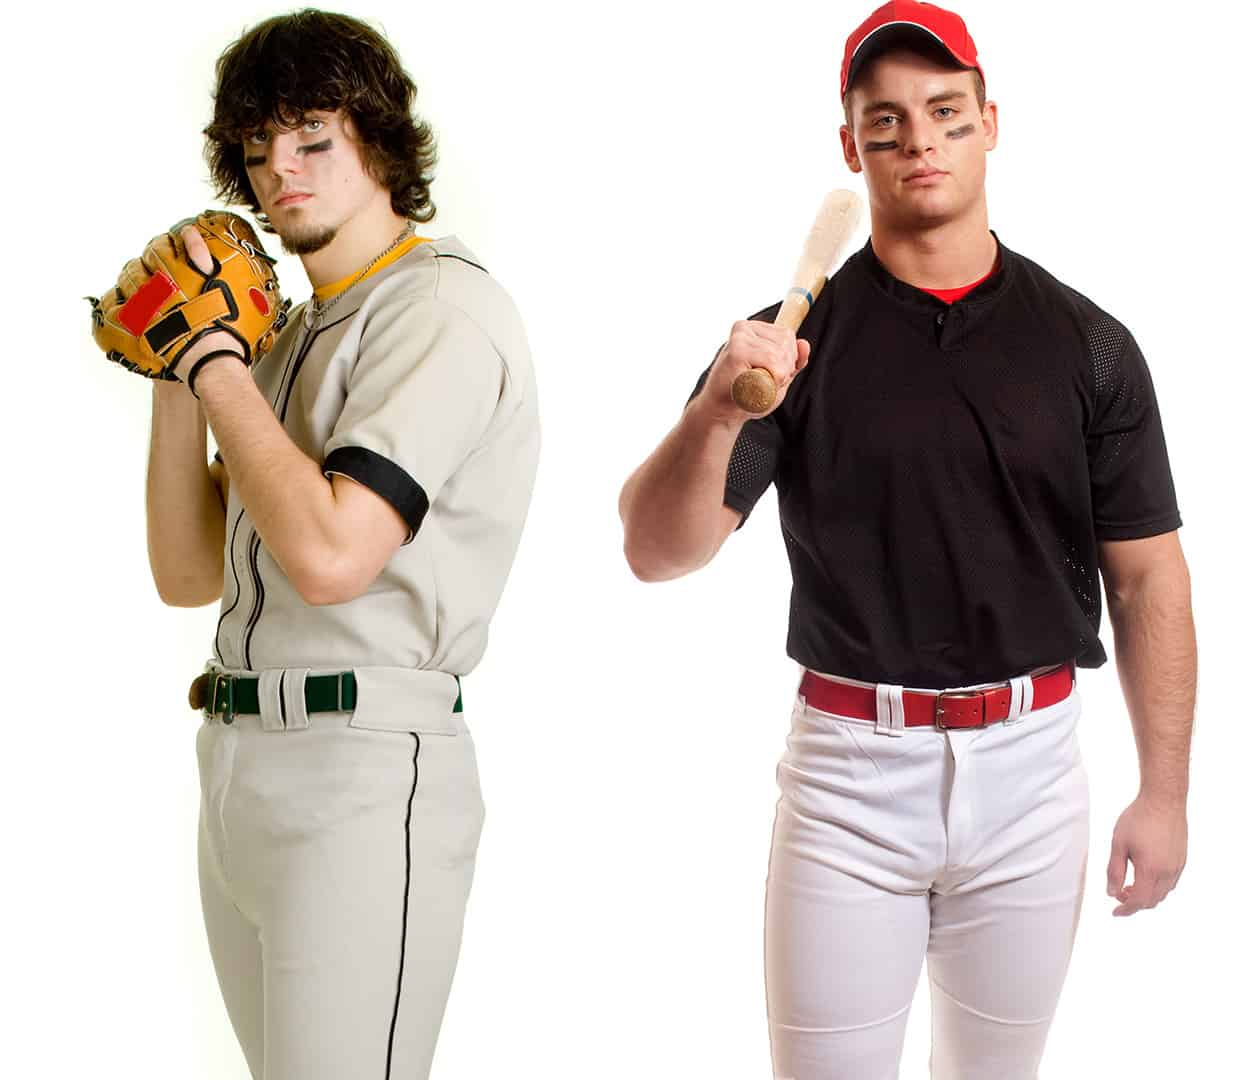 Photo of baseball players